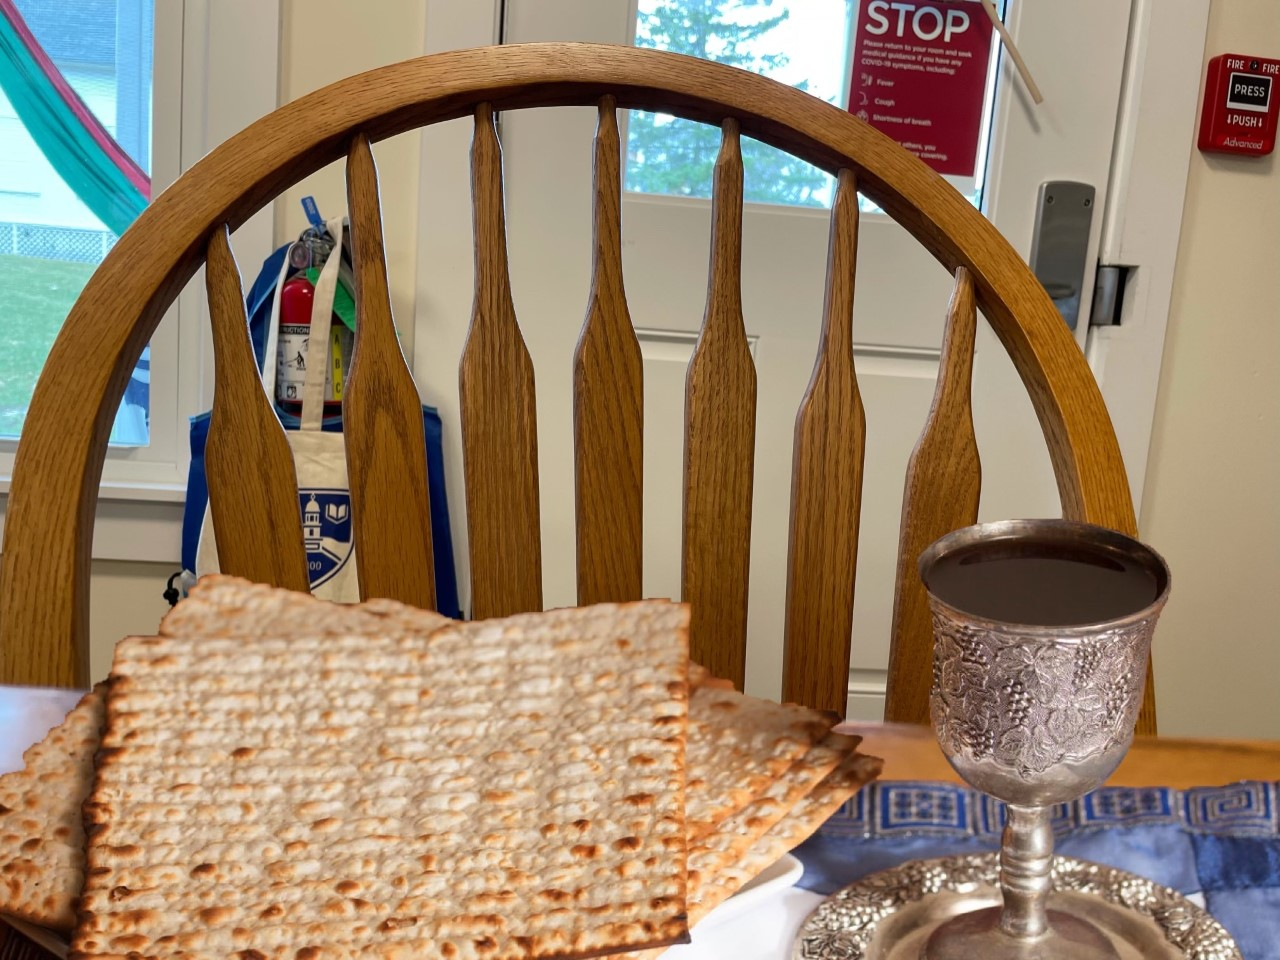 All Jewish Students Removed from Campus After Inviting Off-Campus Messiah for Passover Seder